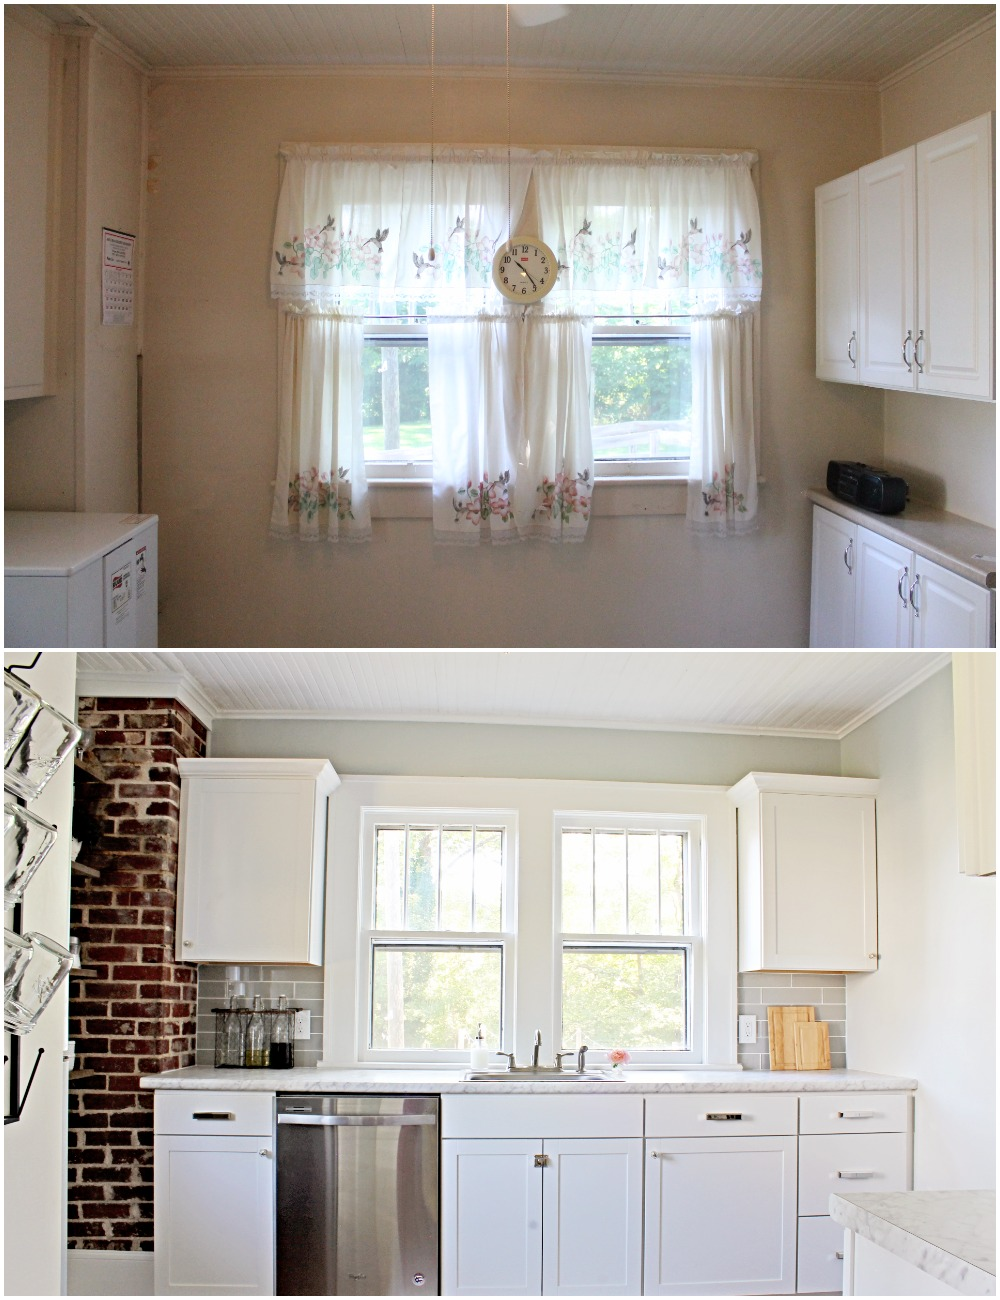 House Flipping Before and Afters - Budget Kitchen Renovation, Cheap Cabinets, Cheap Countertops - Sherwin Williams Silver Strand 20